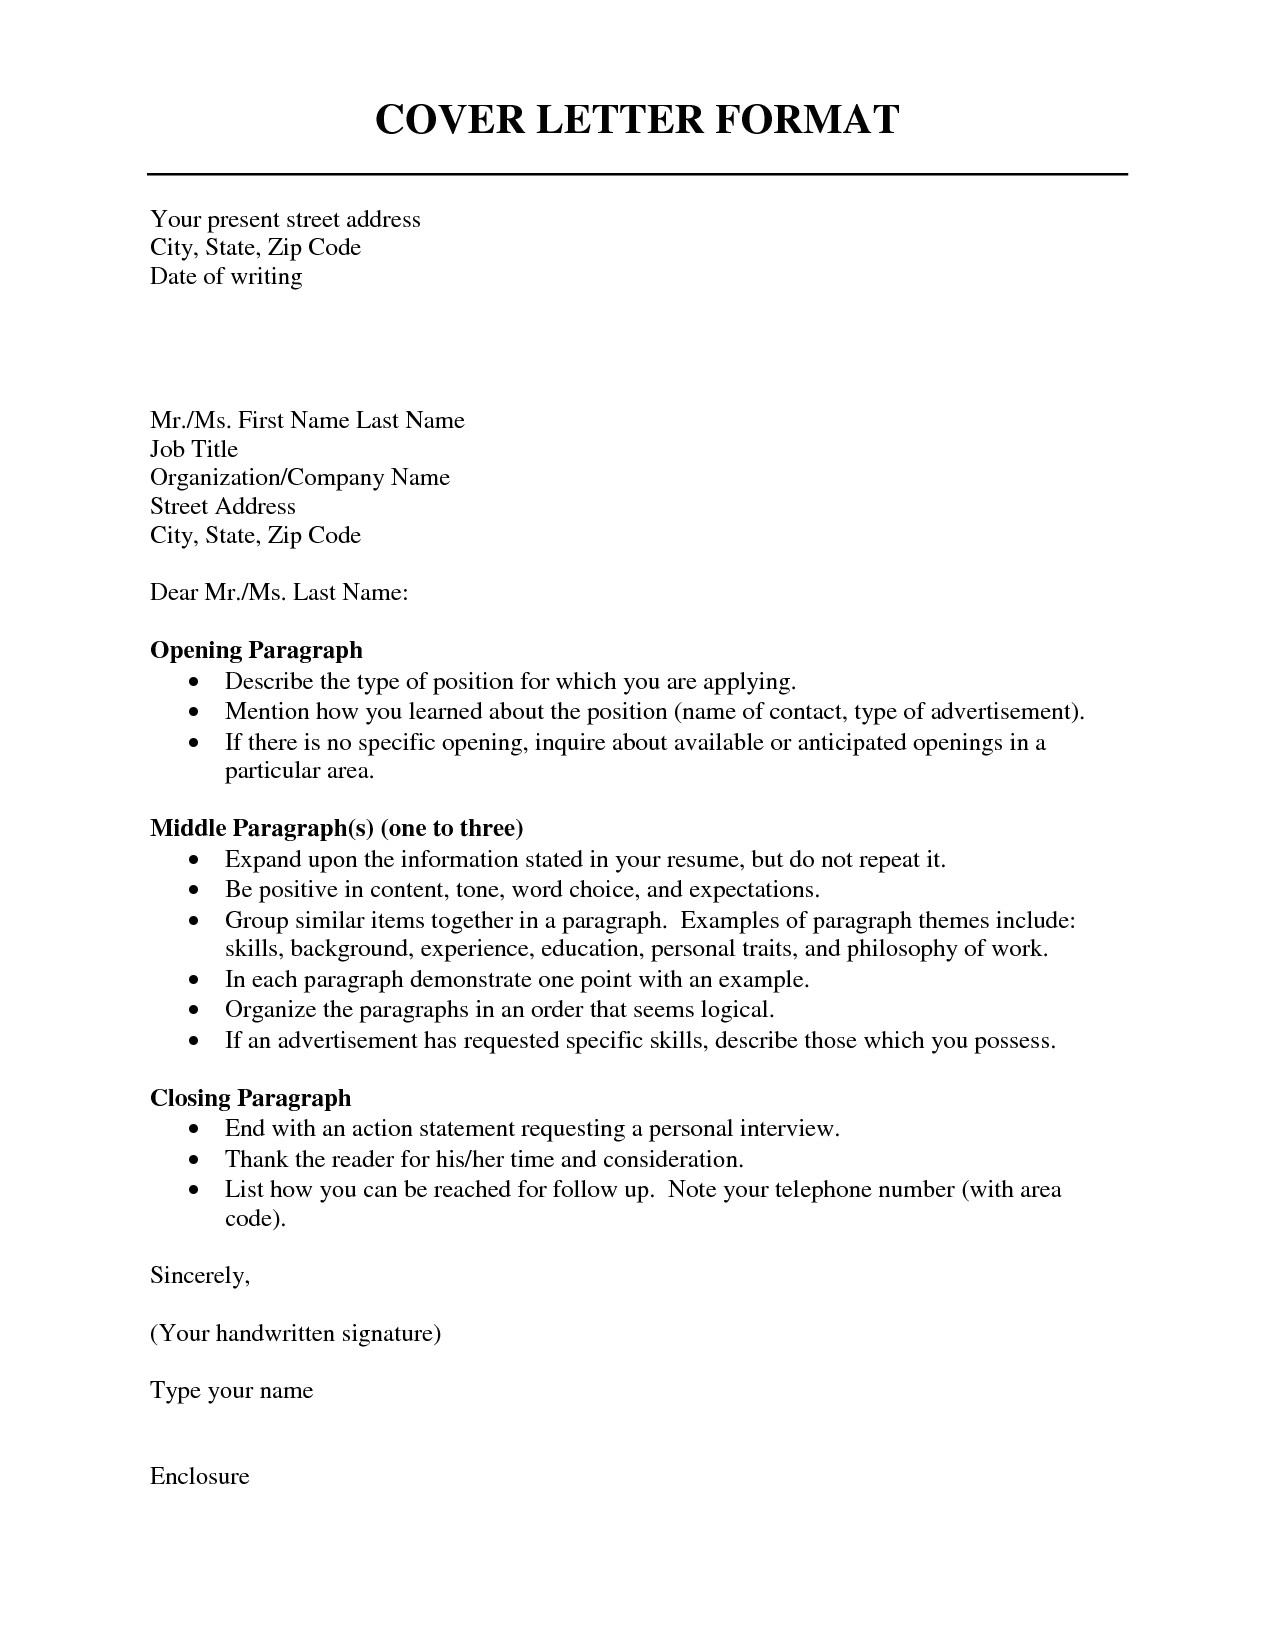 correct cover letter format